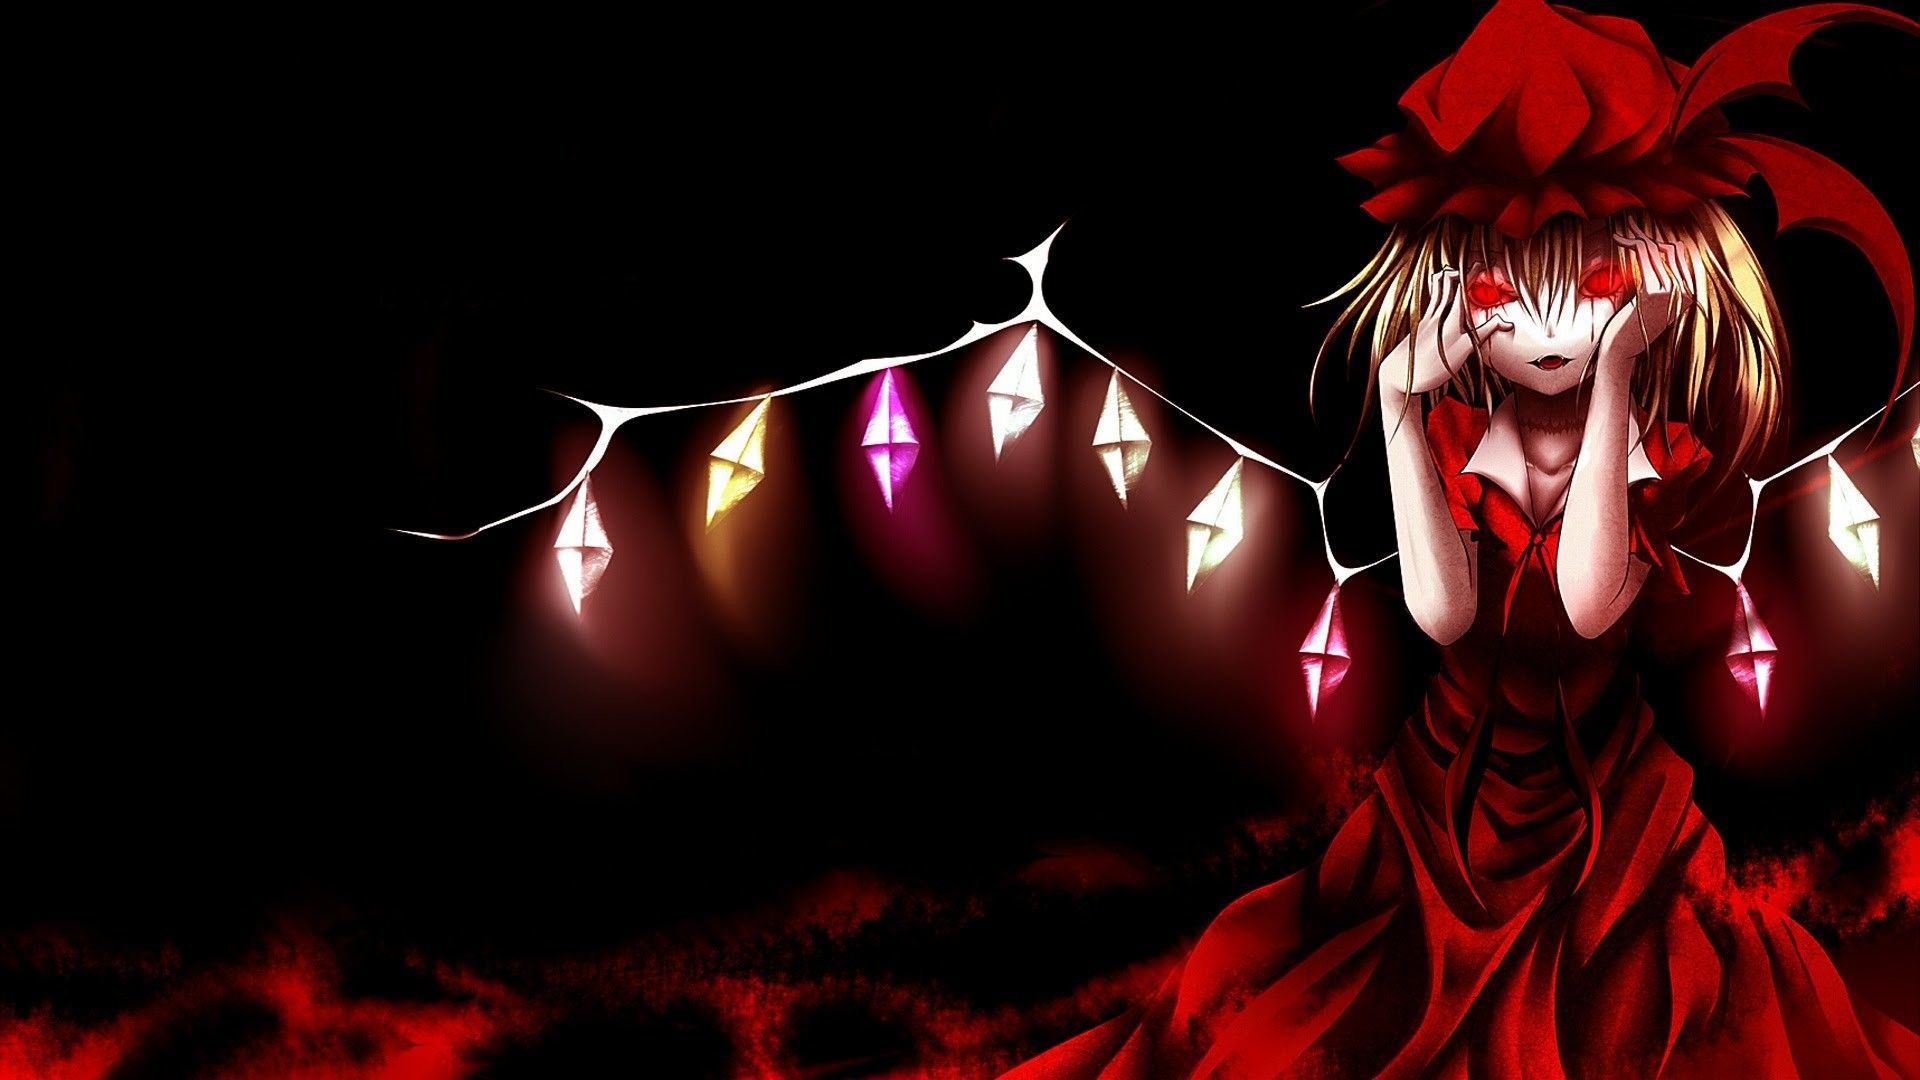 Dark red anime wallpapers top free dark red anime - Dark anime background ...